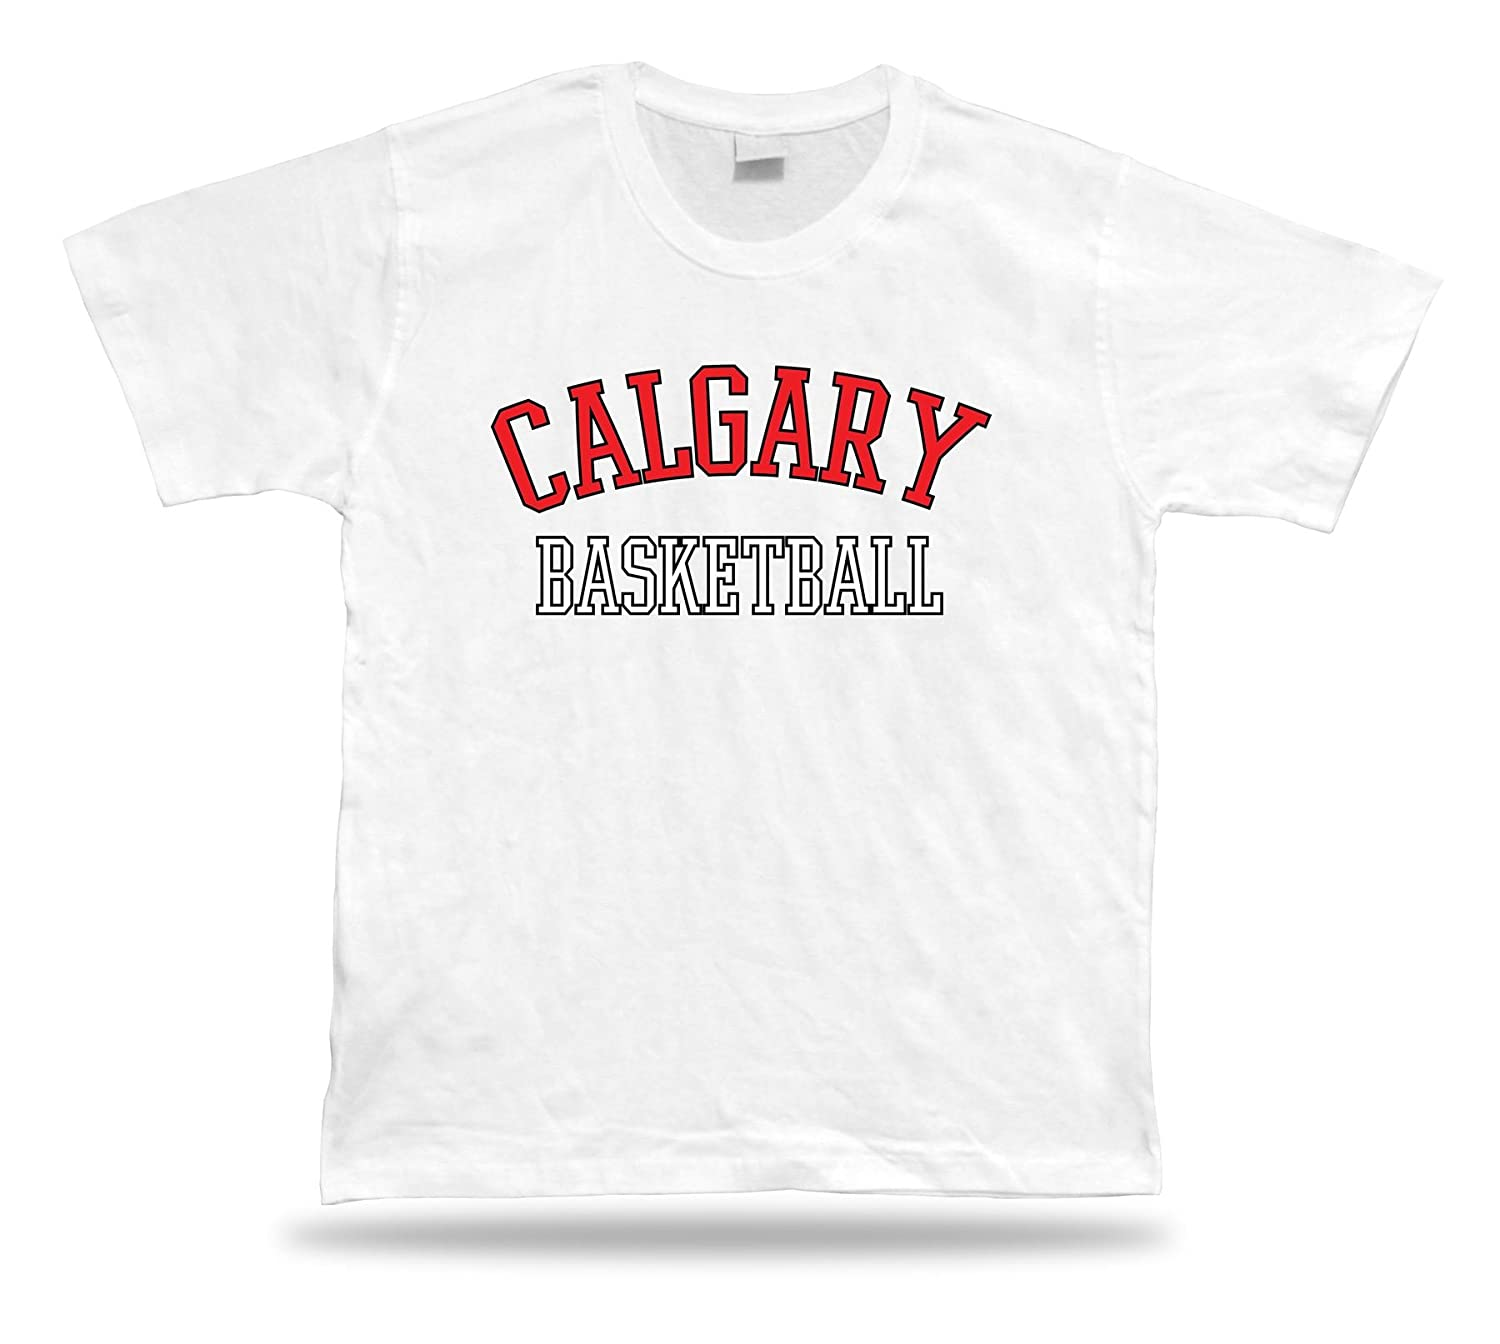 Calgary Canada BASKETBALL t-shirt tee warm up style court side design